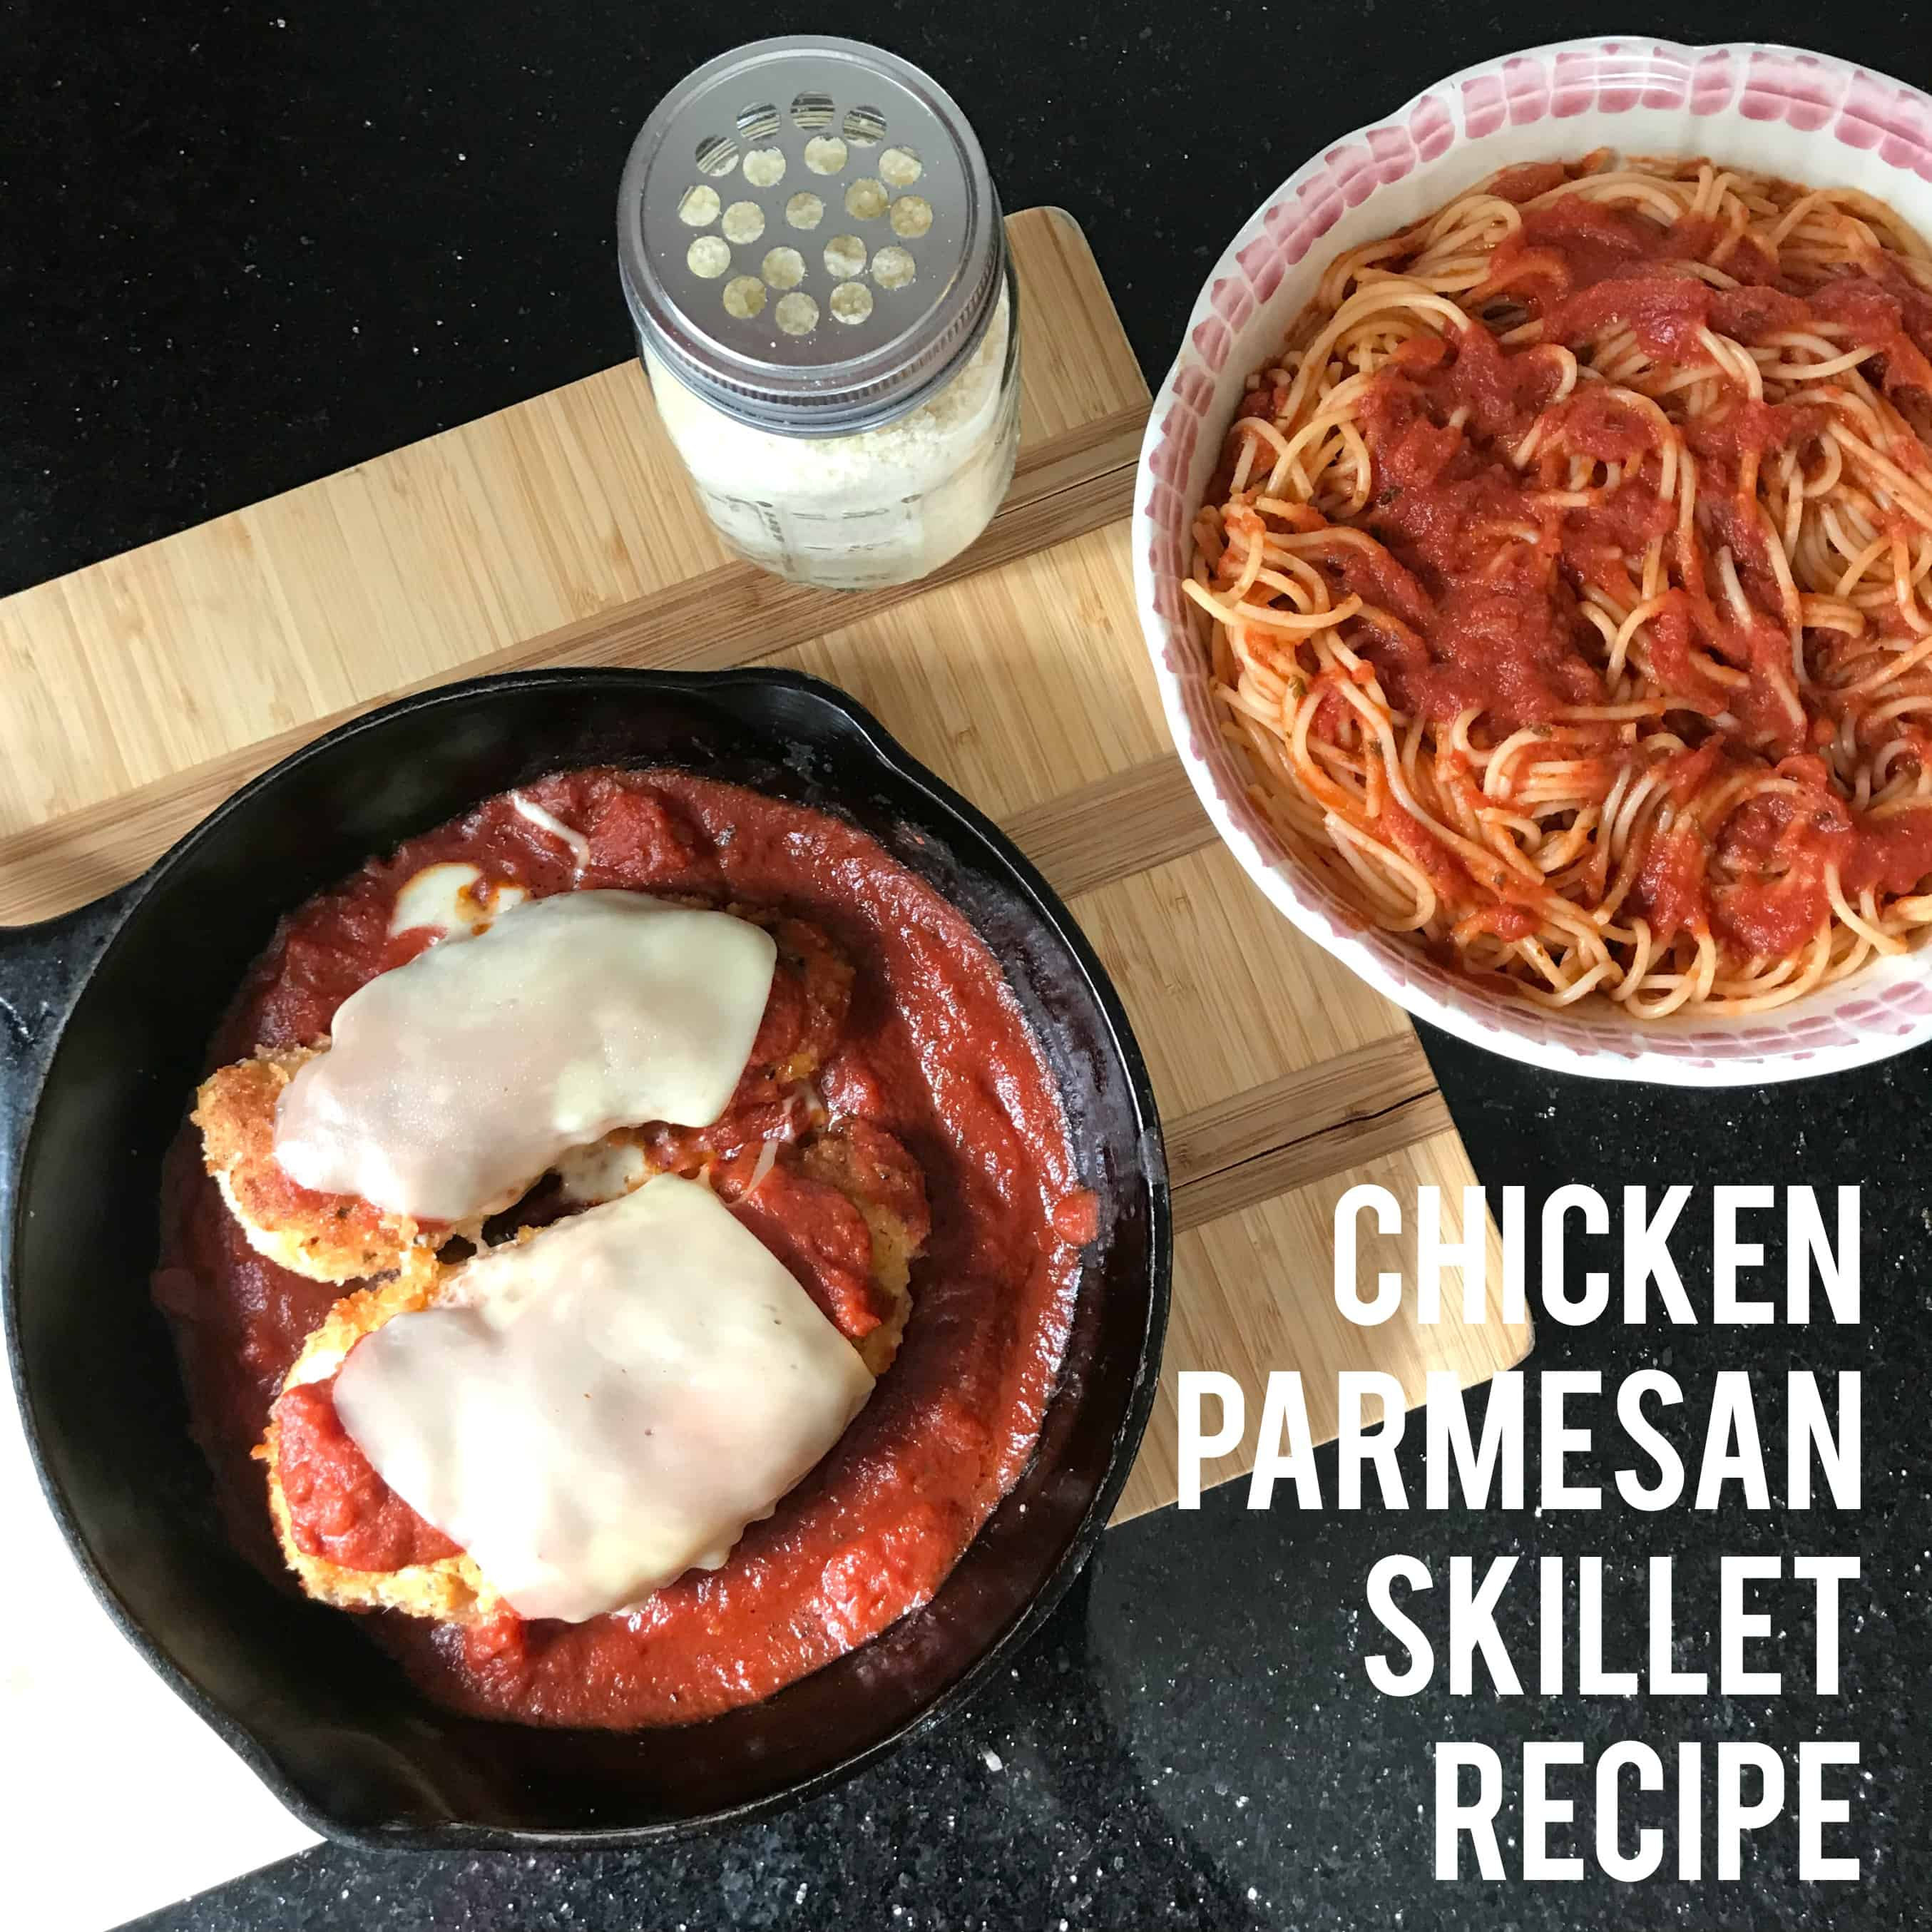 Simple Chicken Parmesan Skillet Recipe (PLUS Giveaway!)